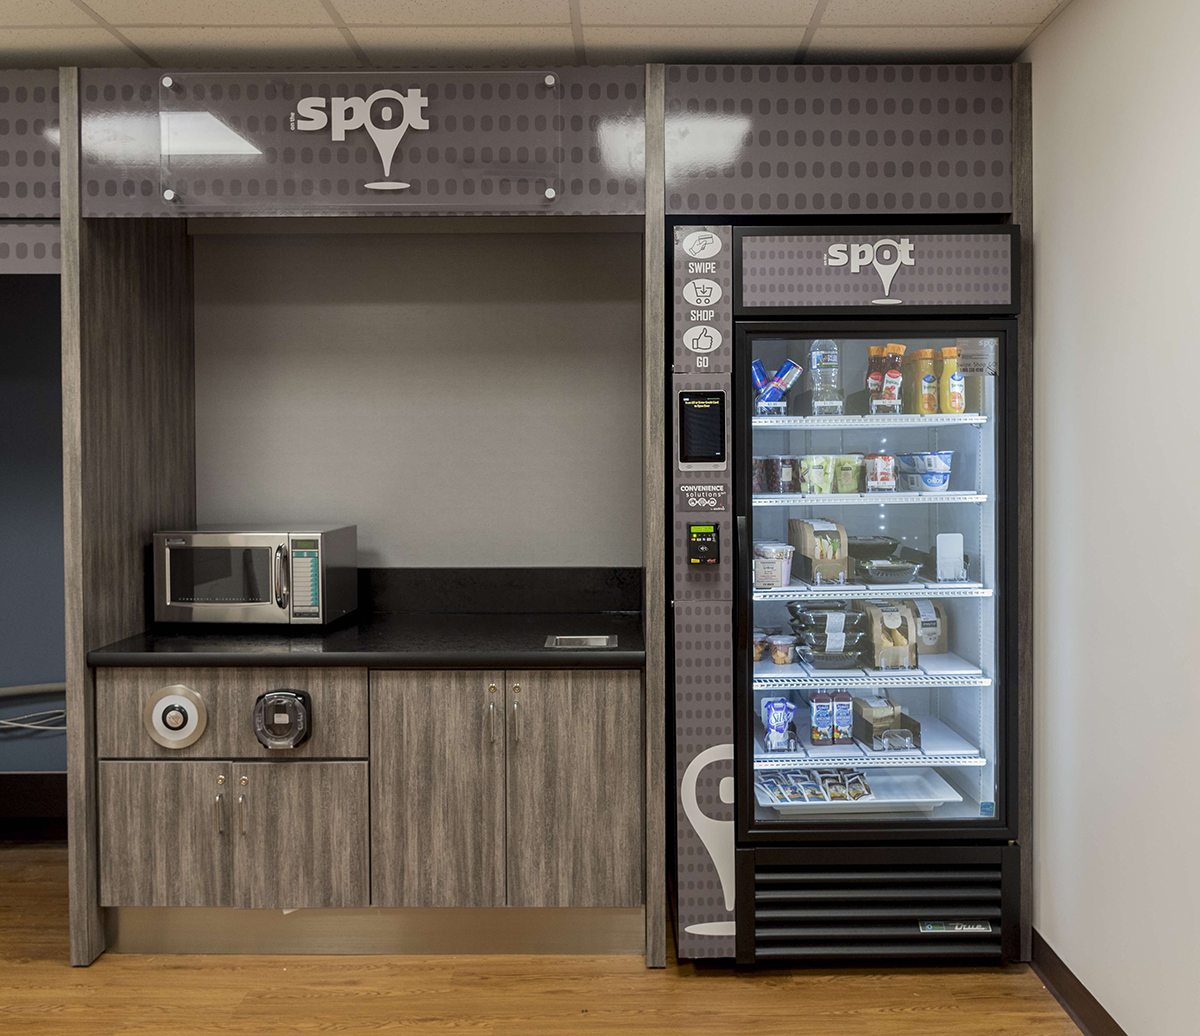 New vending machine that offers fresh food